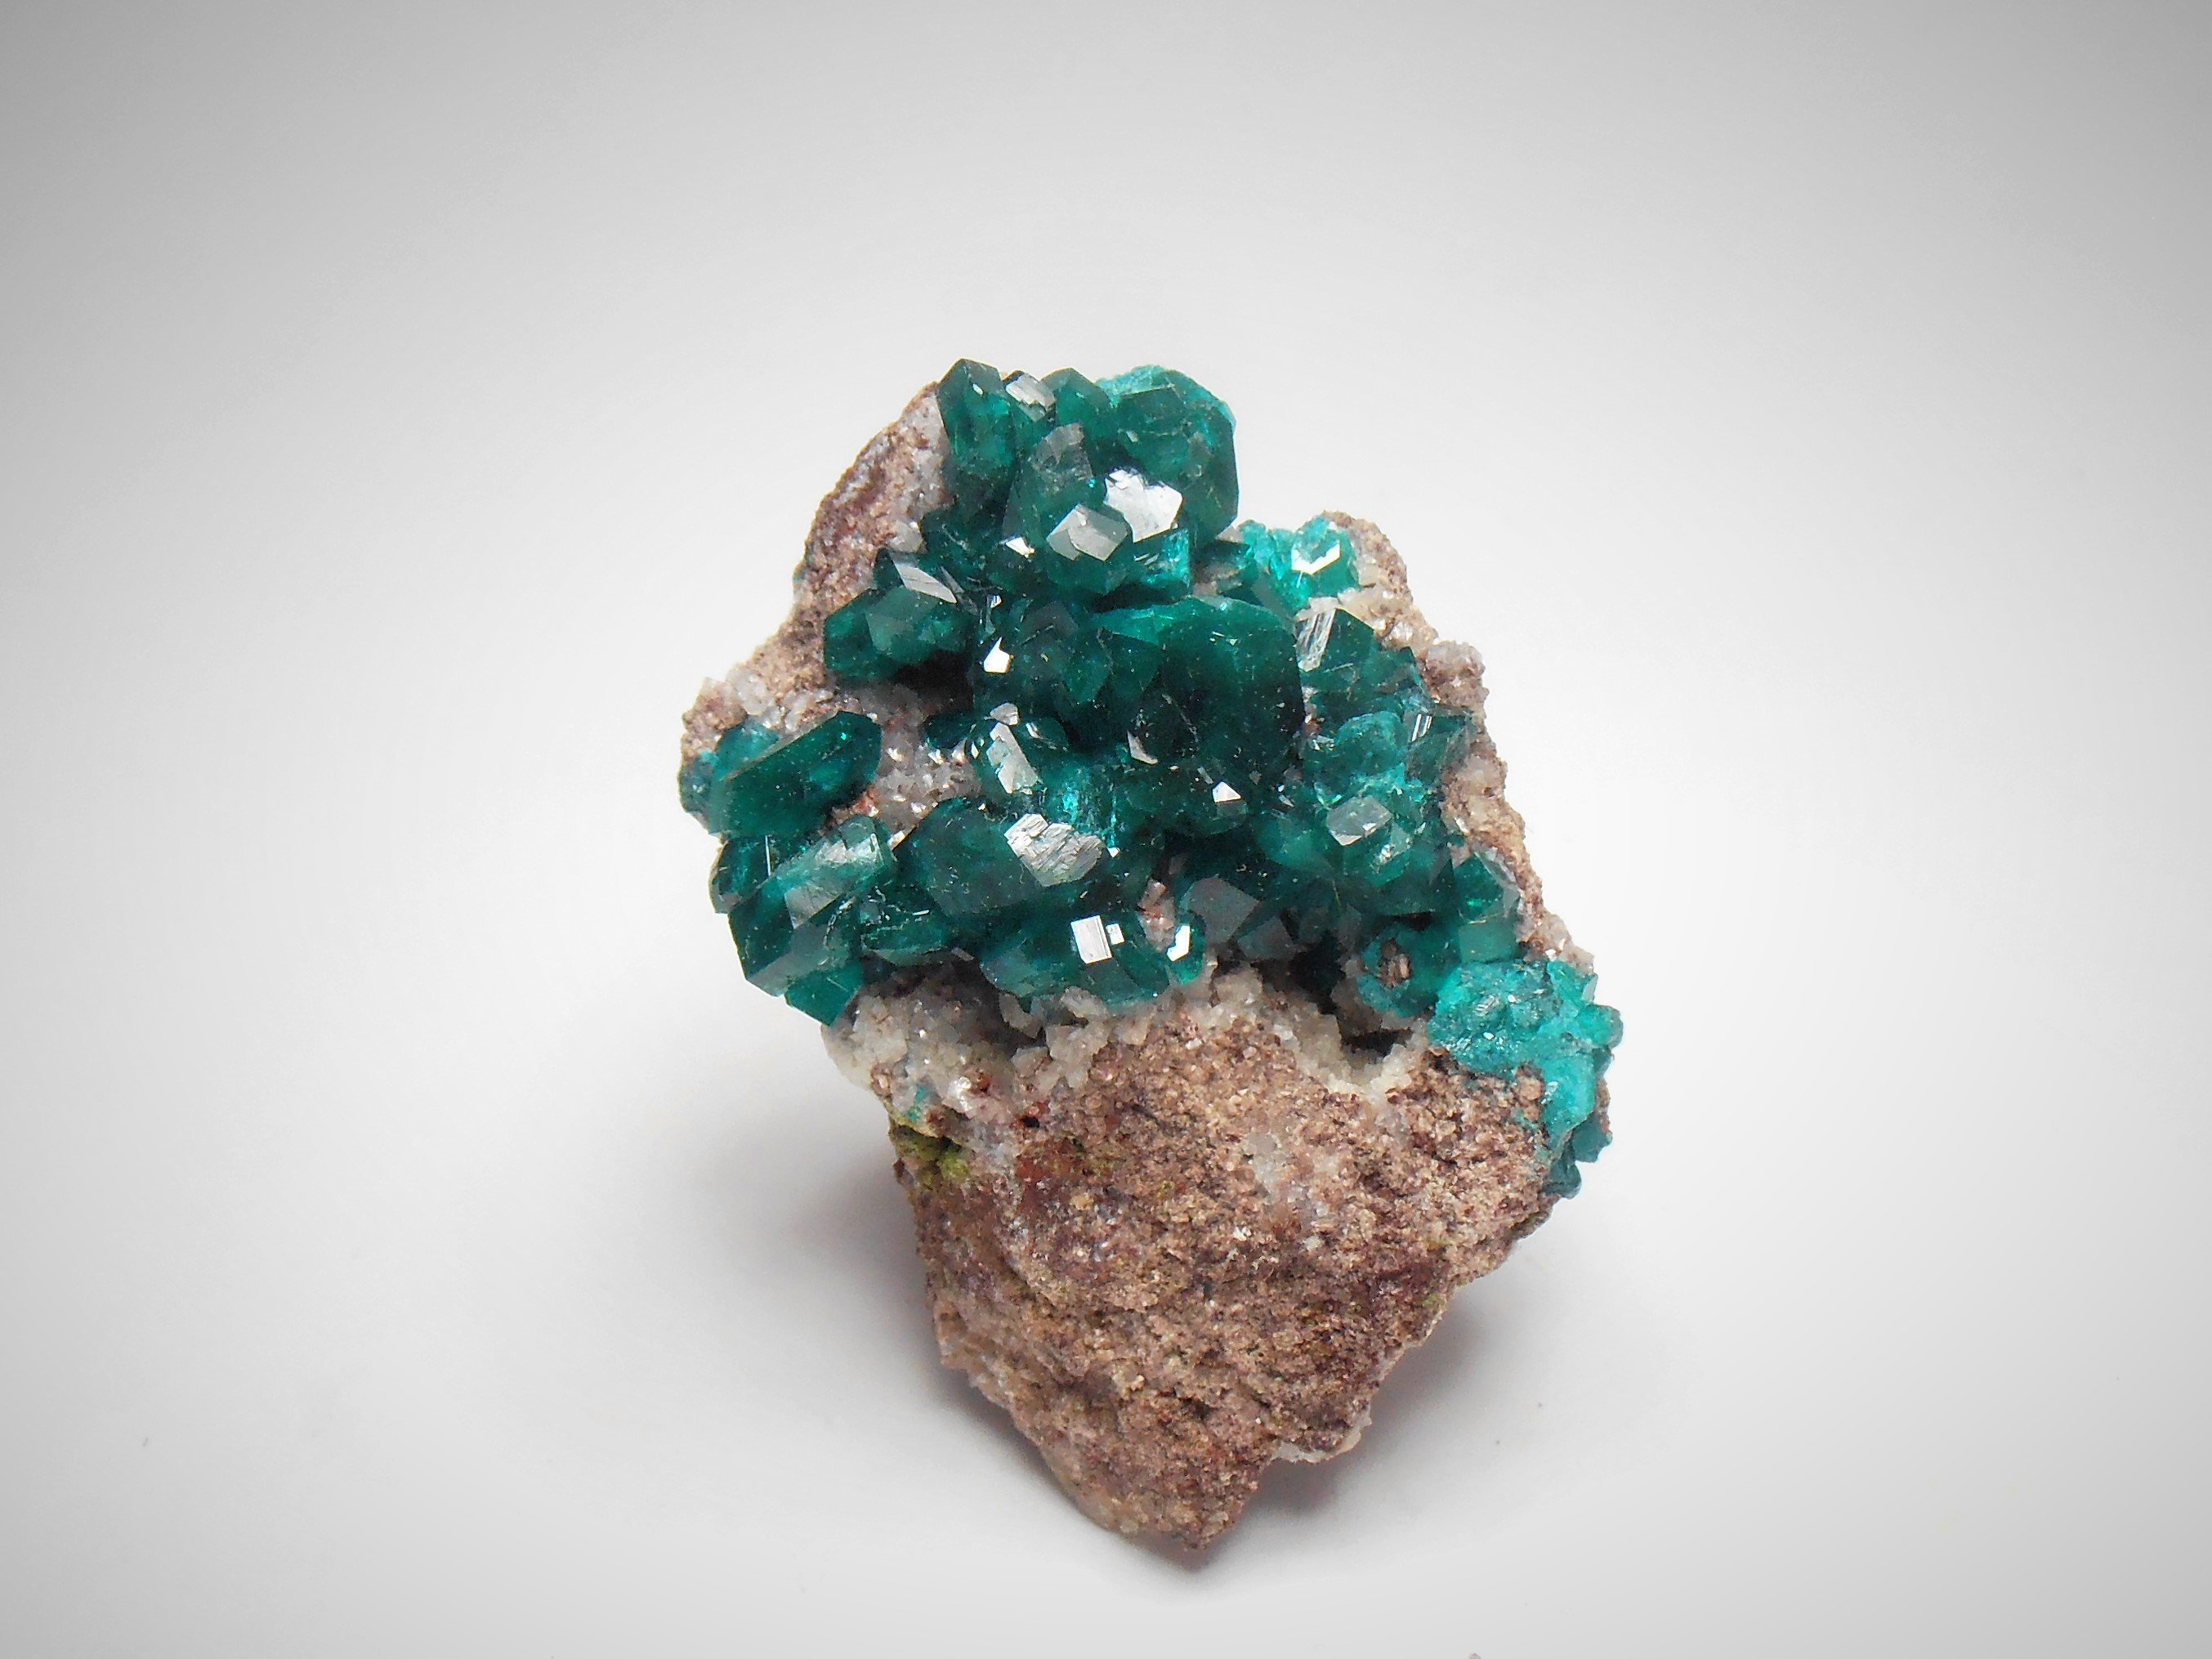 Dioptase on Calcite from the Tsumeb Mine, Tsumeb